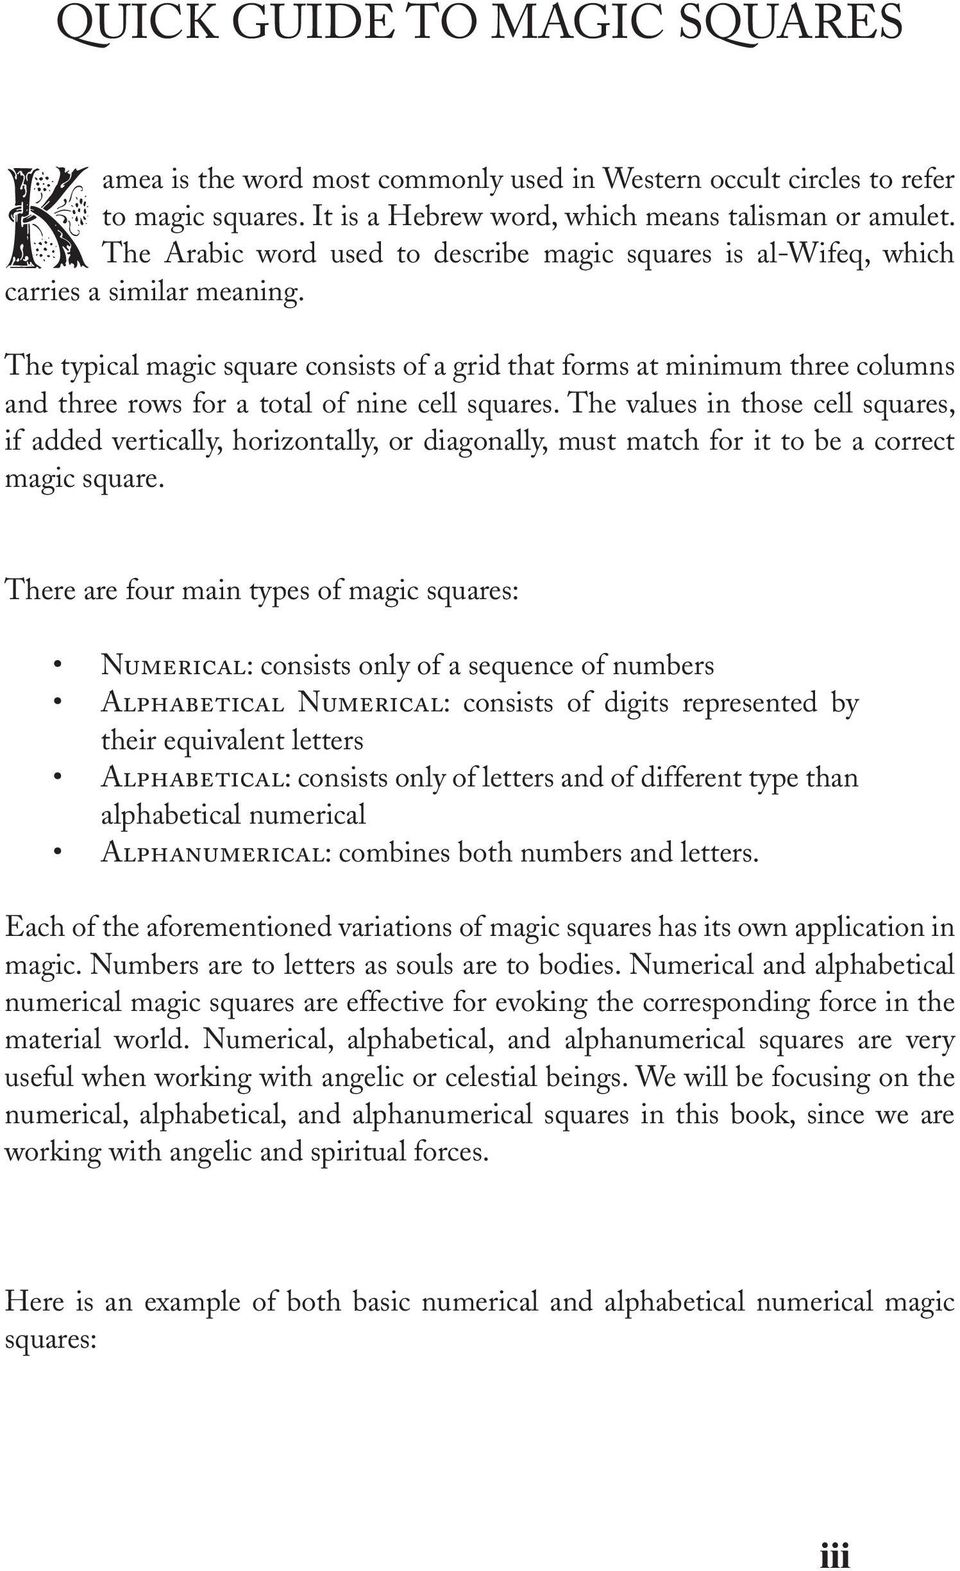 OCCULT ENCYCLOPEDIA OF MAGIC SQUARES PLANETARY ANGELS AND